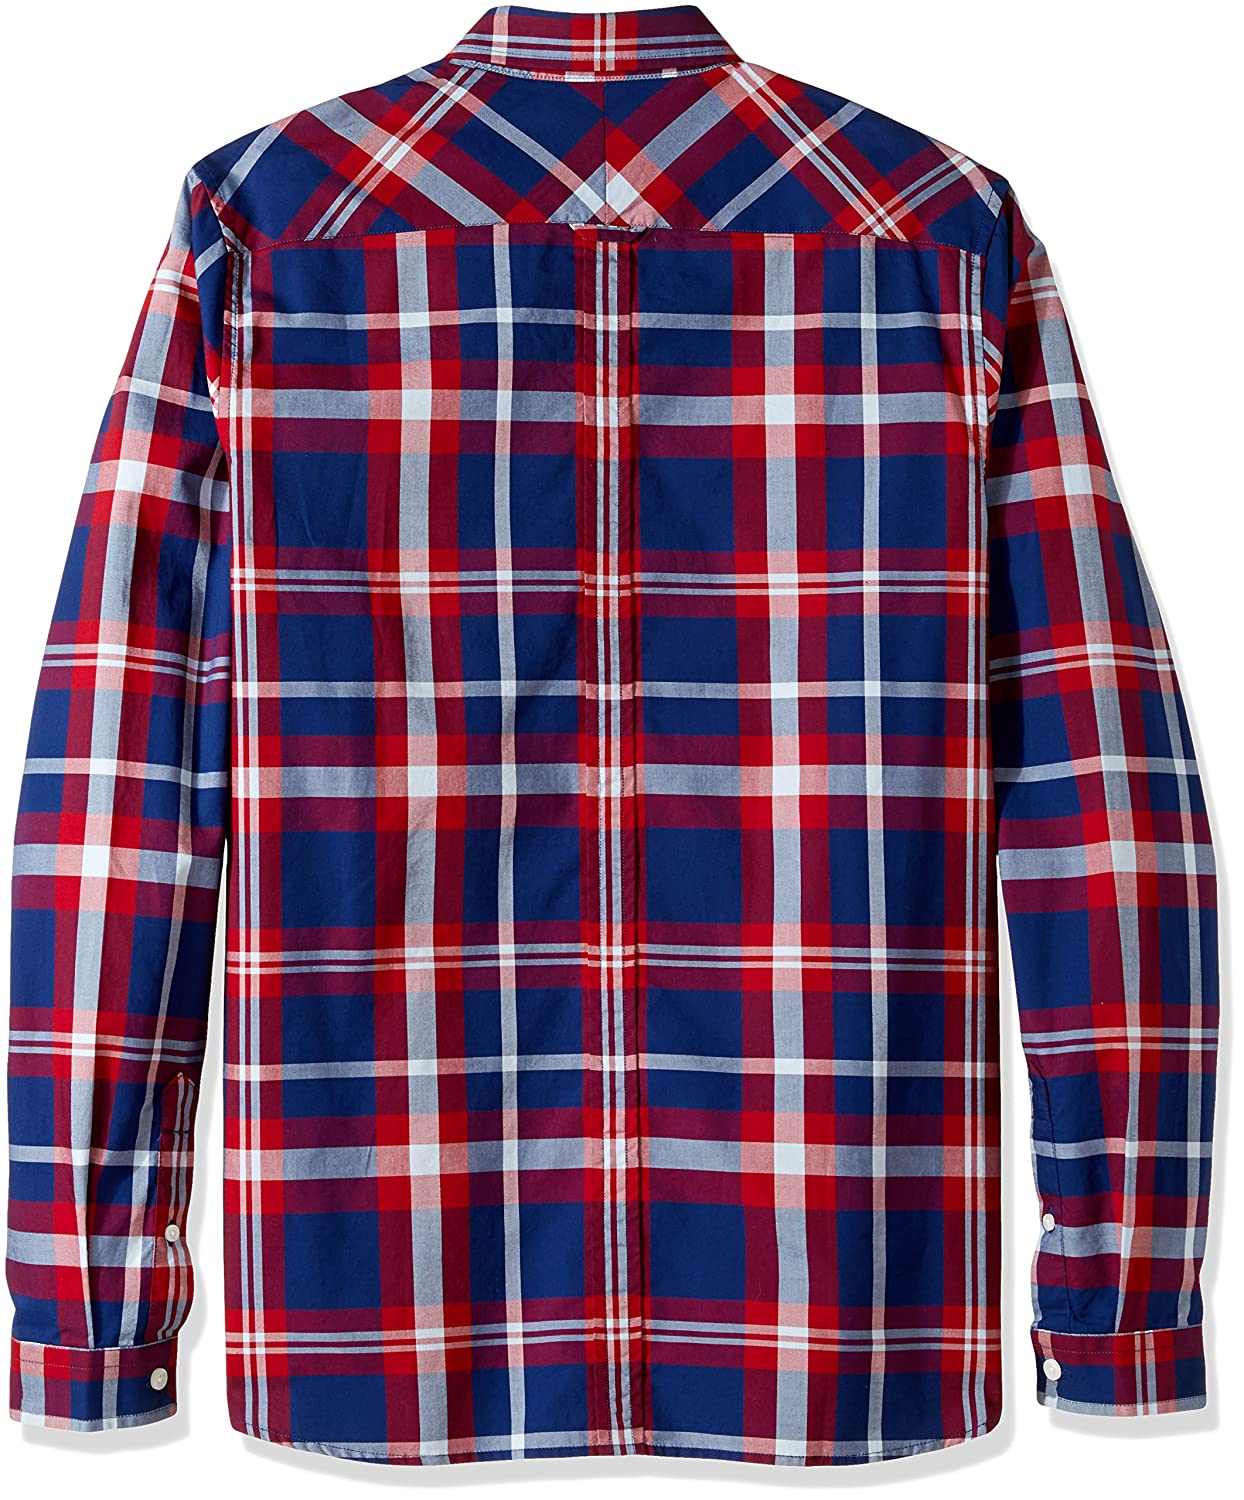 8c118e0df3bc Amazon.com: Fred Perry Men's Bold Check Shirt, England Red, X-Small:  Clothing